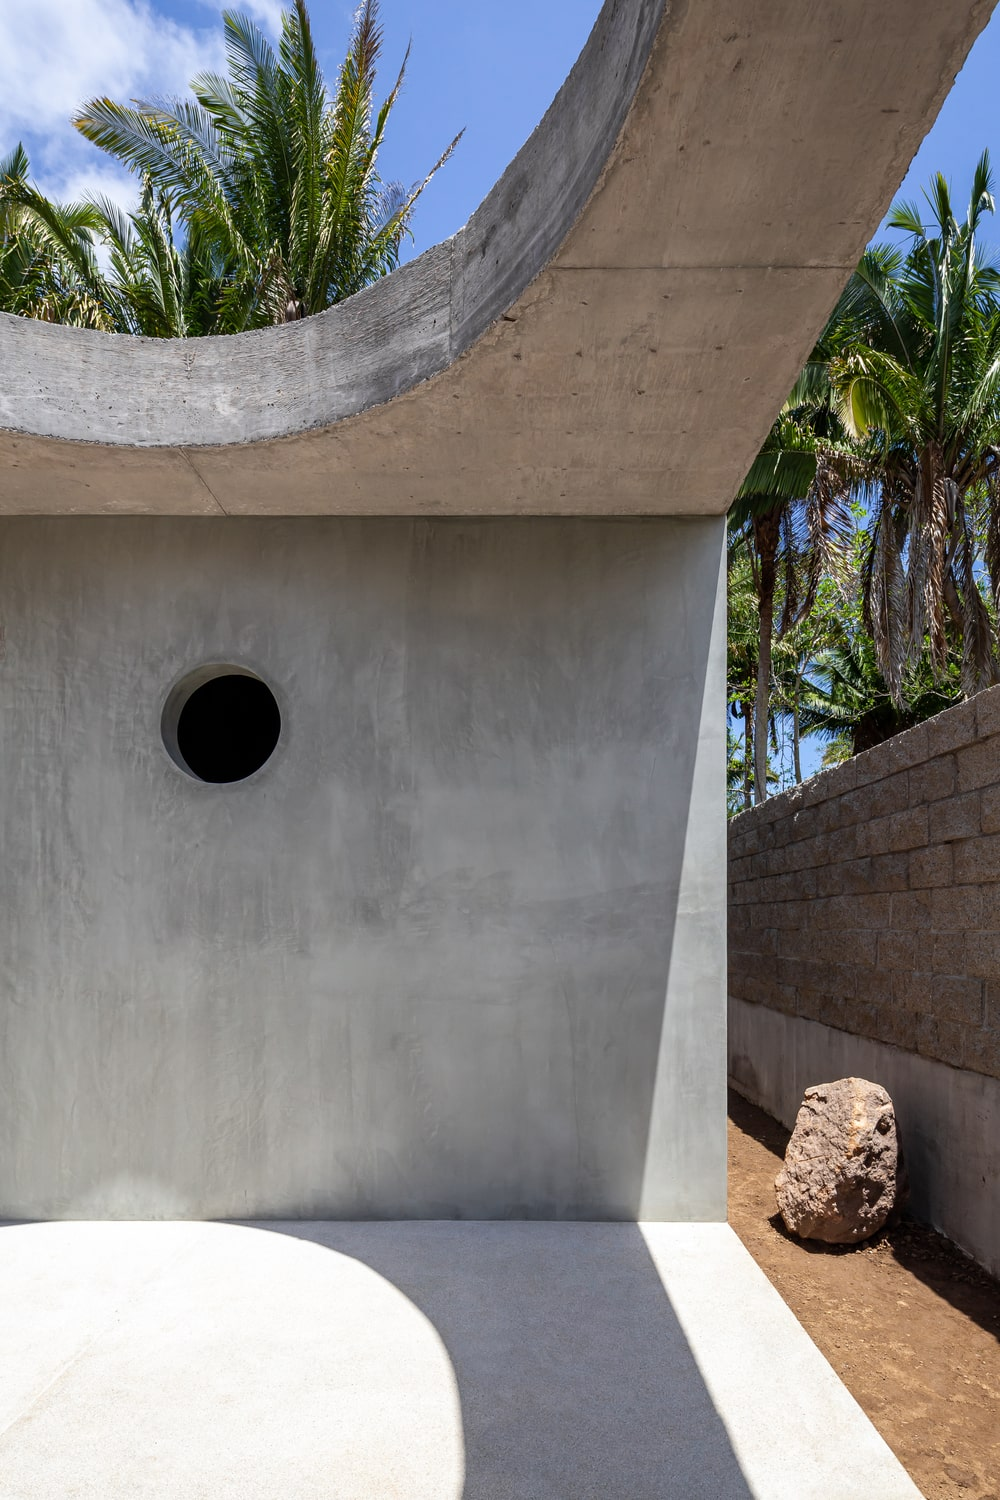 This is a close look at the concrete wall with a round hole that serves as a ventilation window.